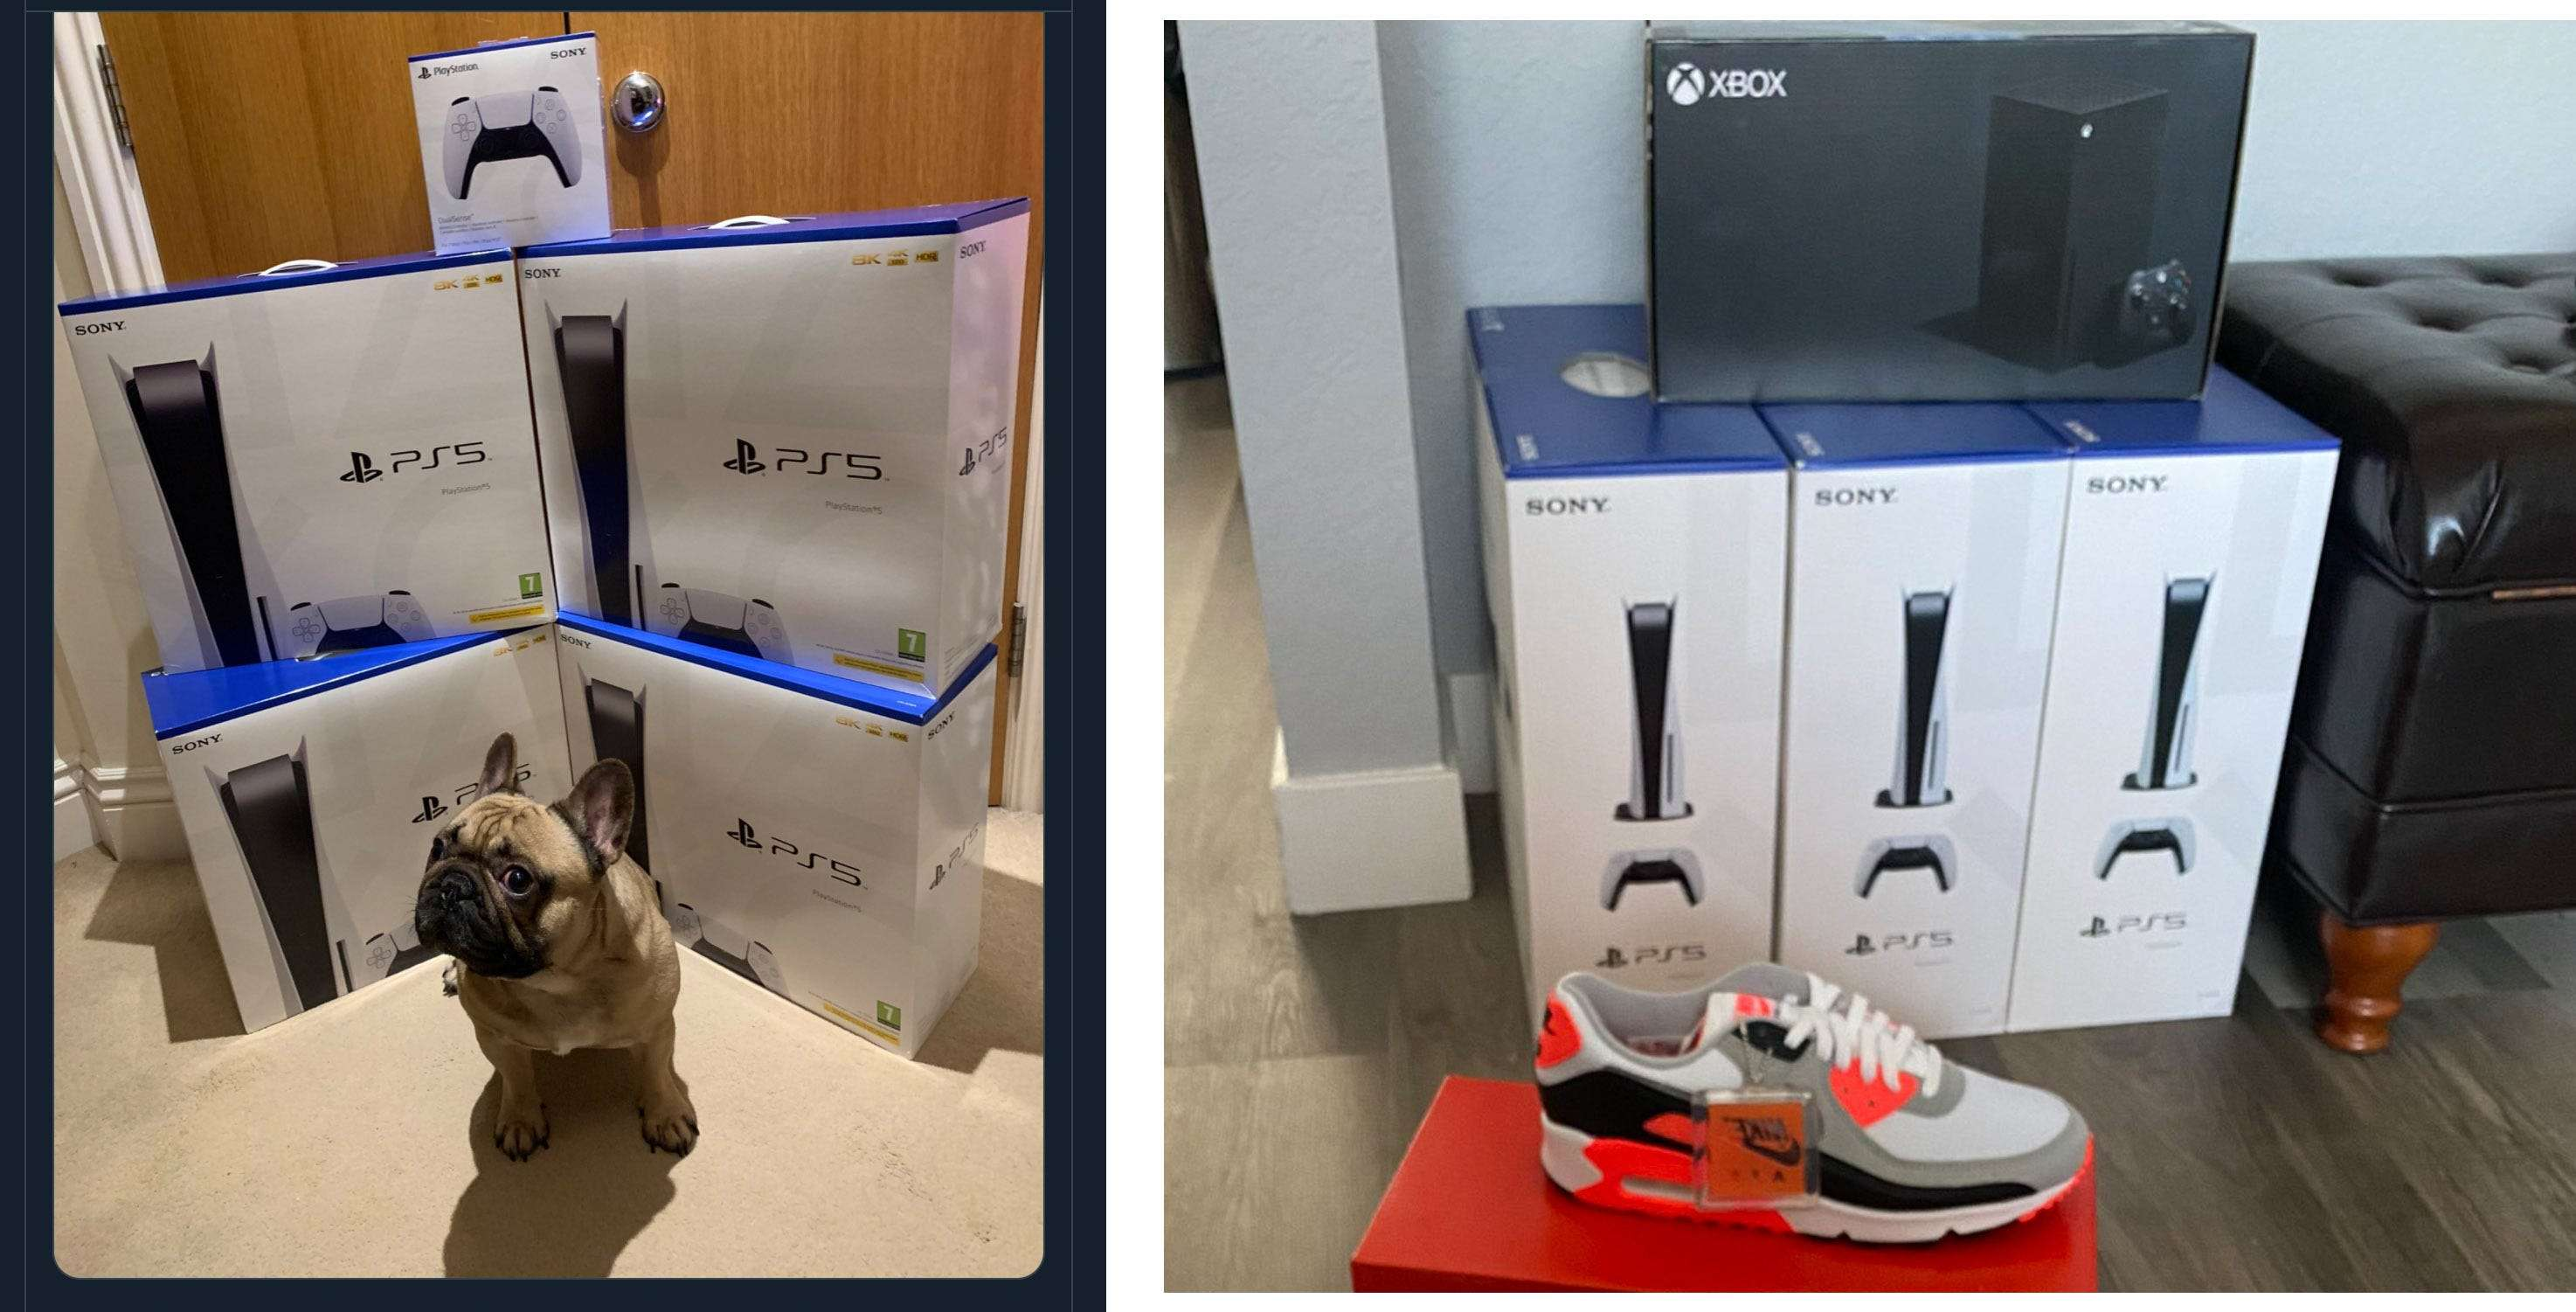 One reseller group snagged nearly 3,500 PlayStation 5 consoles, and the resale market might be the only place to score one after it sold out everywhere online